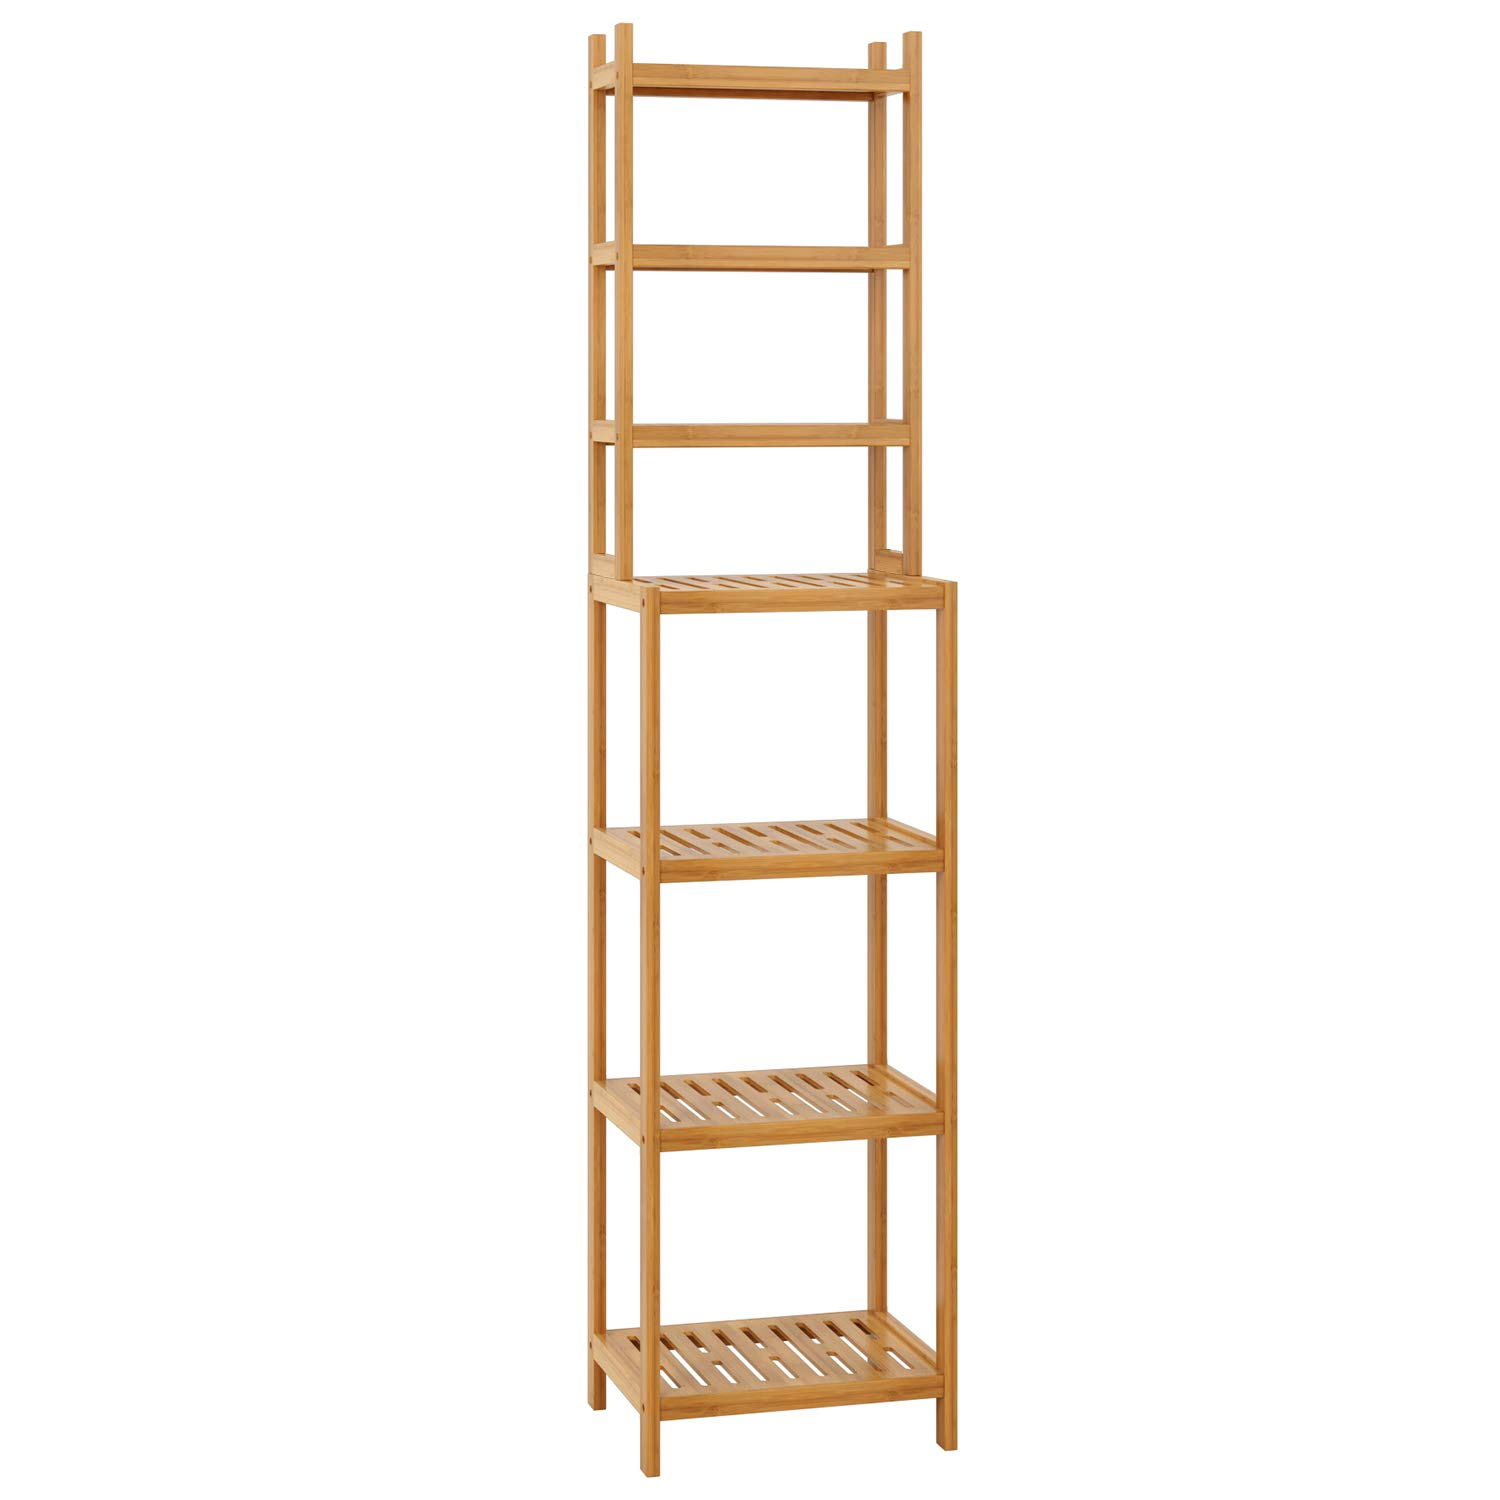 Homfa Bathroom Storage Shelf Bamboo Shelf Organiser Rack Free Standing Shelves Display Stand Shelving Unit 7 Tiers with White Frame for Kitchen Living Room Bedroom Office 160 * 36 * 28cm HF